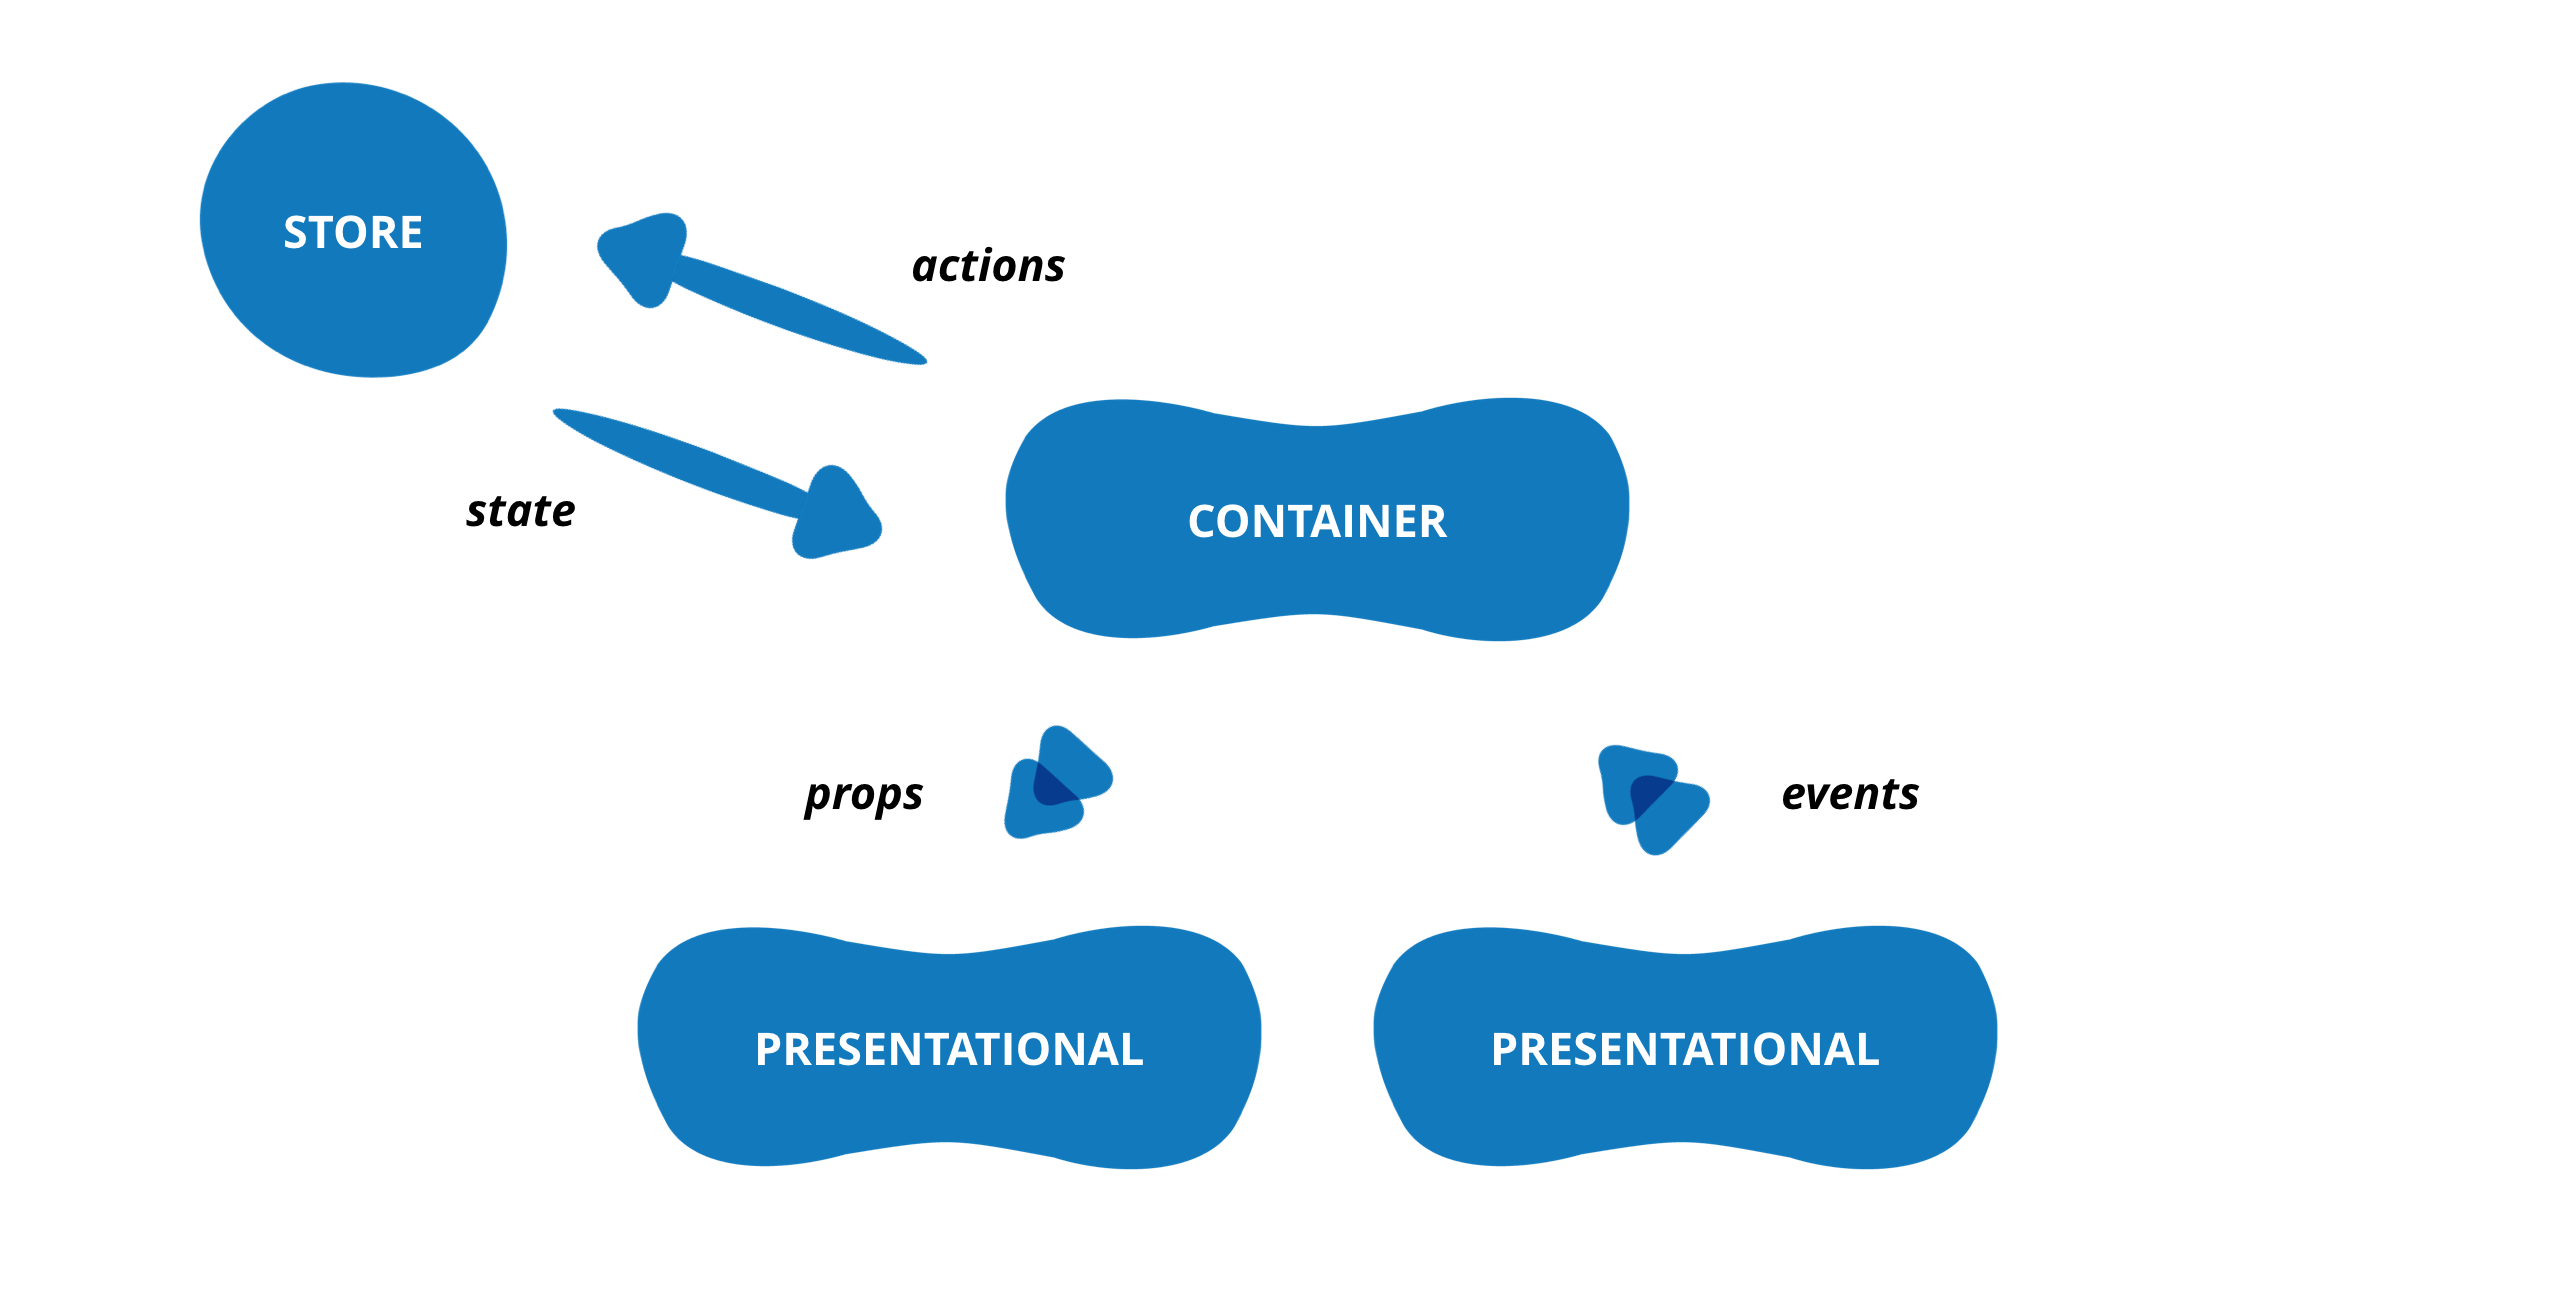 Presentational and Container components pattern